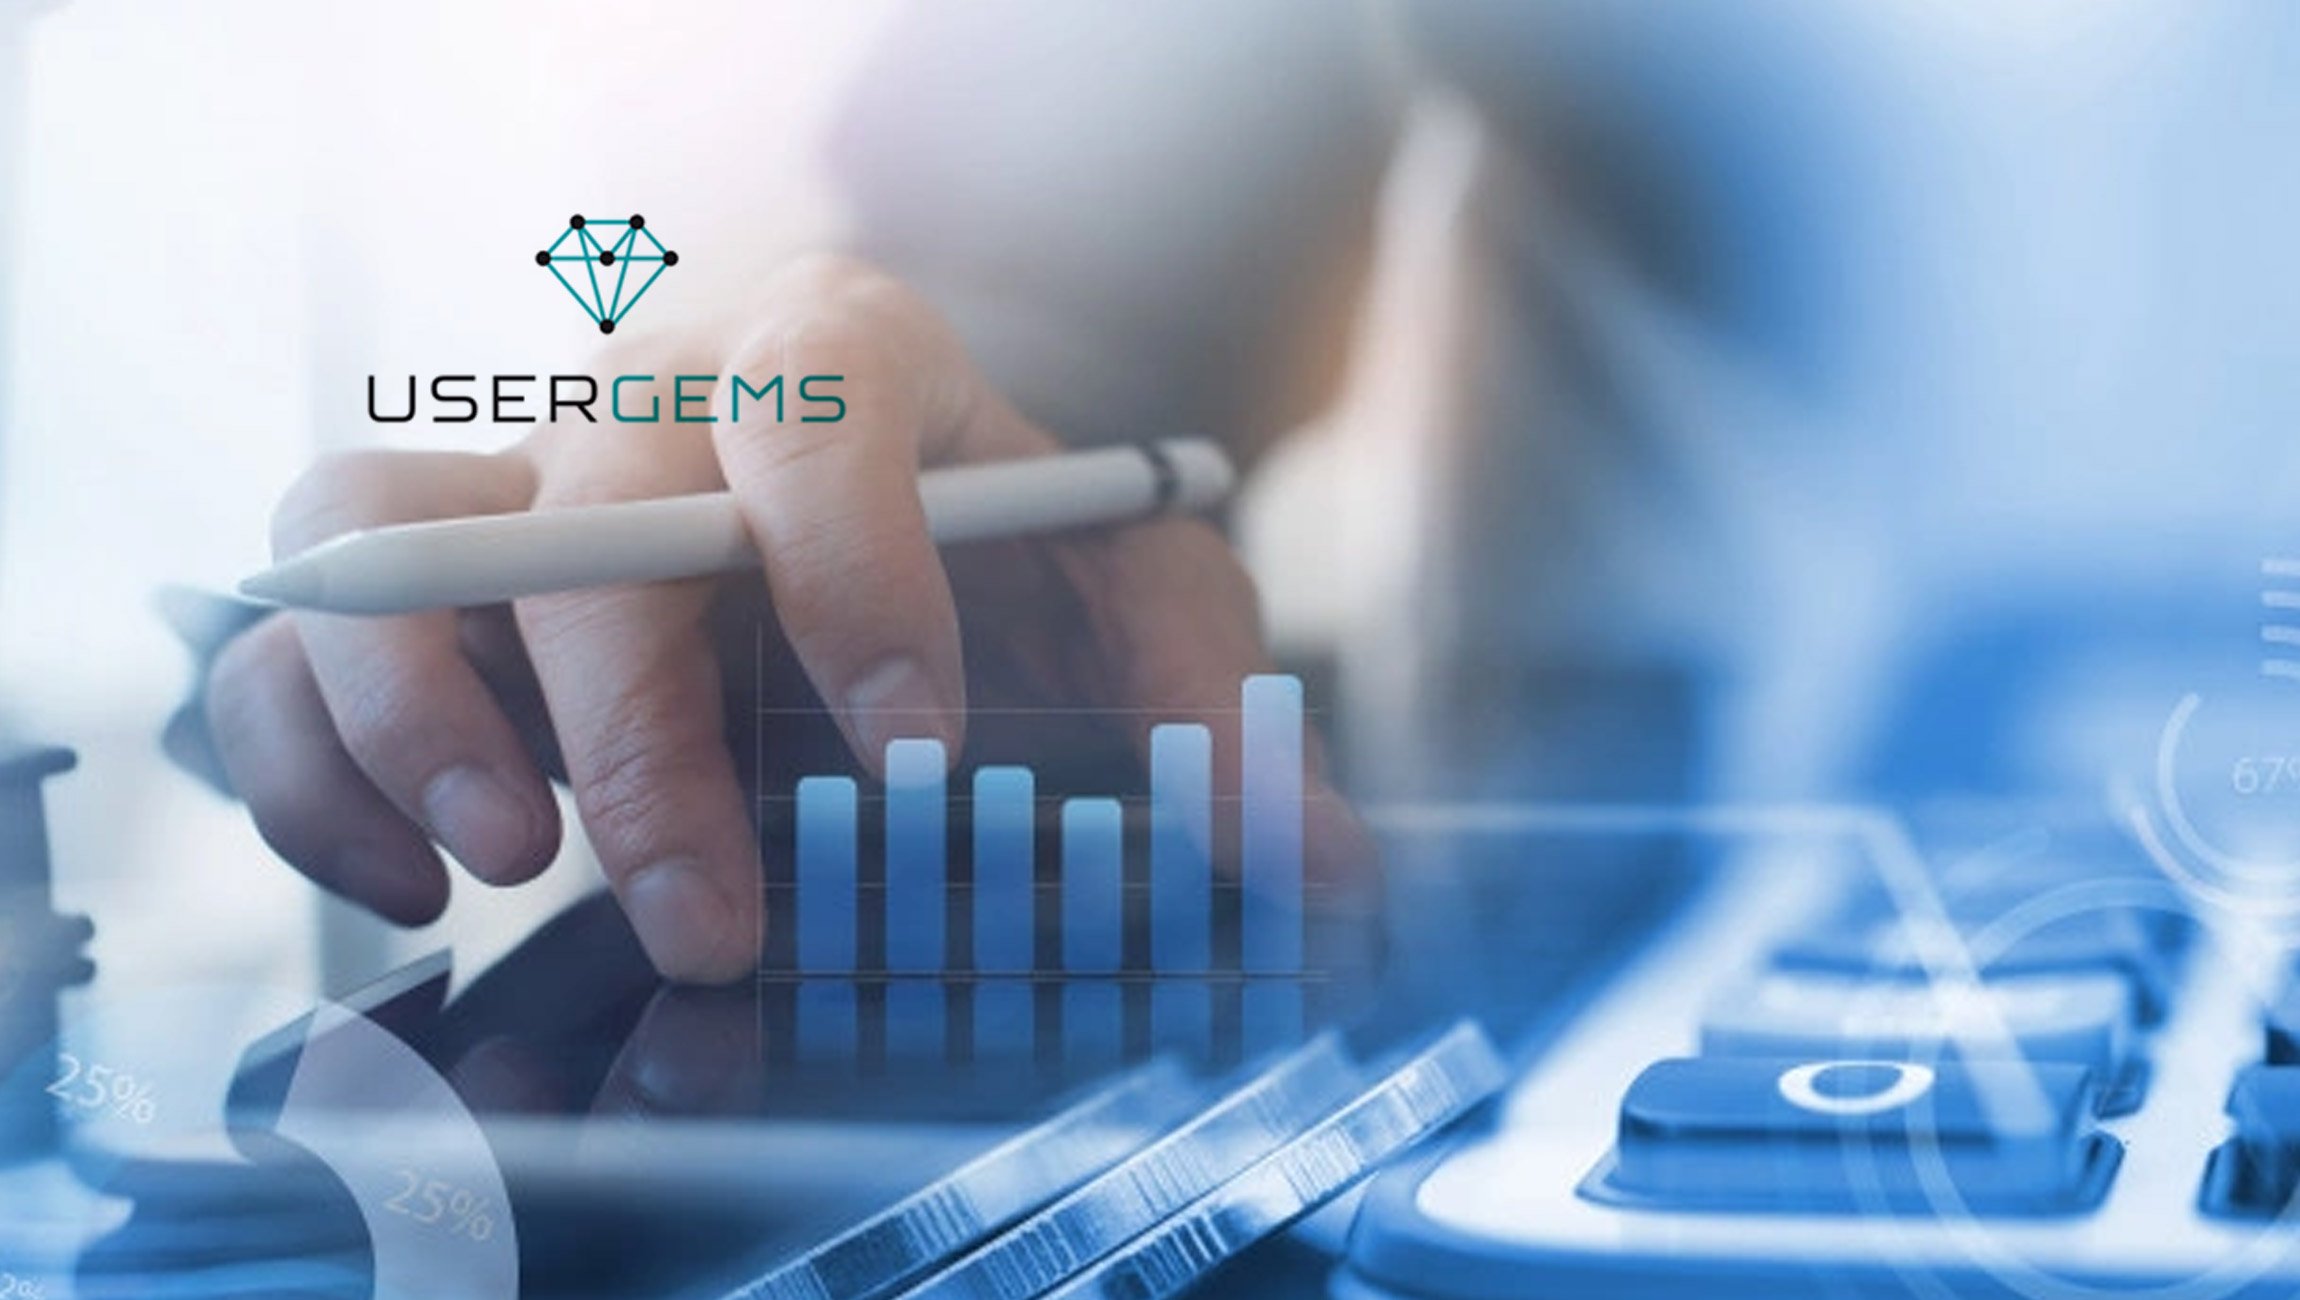 UserGems Helps B2B Companies Generate More Revenue With Critical Insights Into Buyers' Job Changes